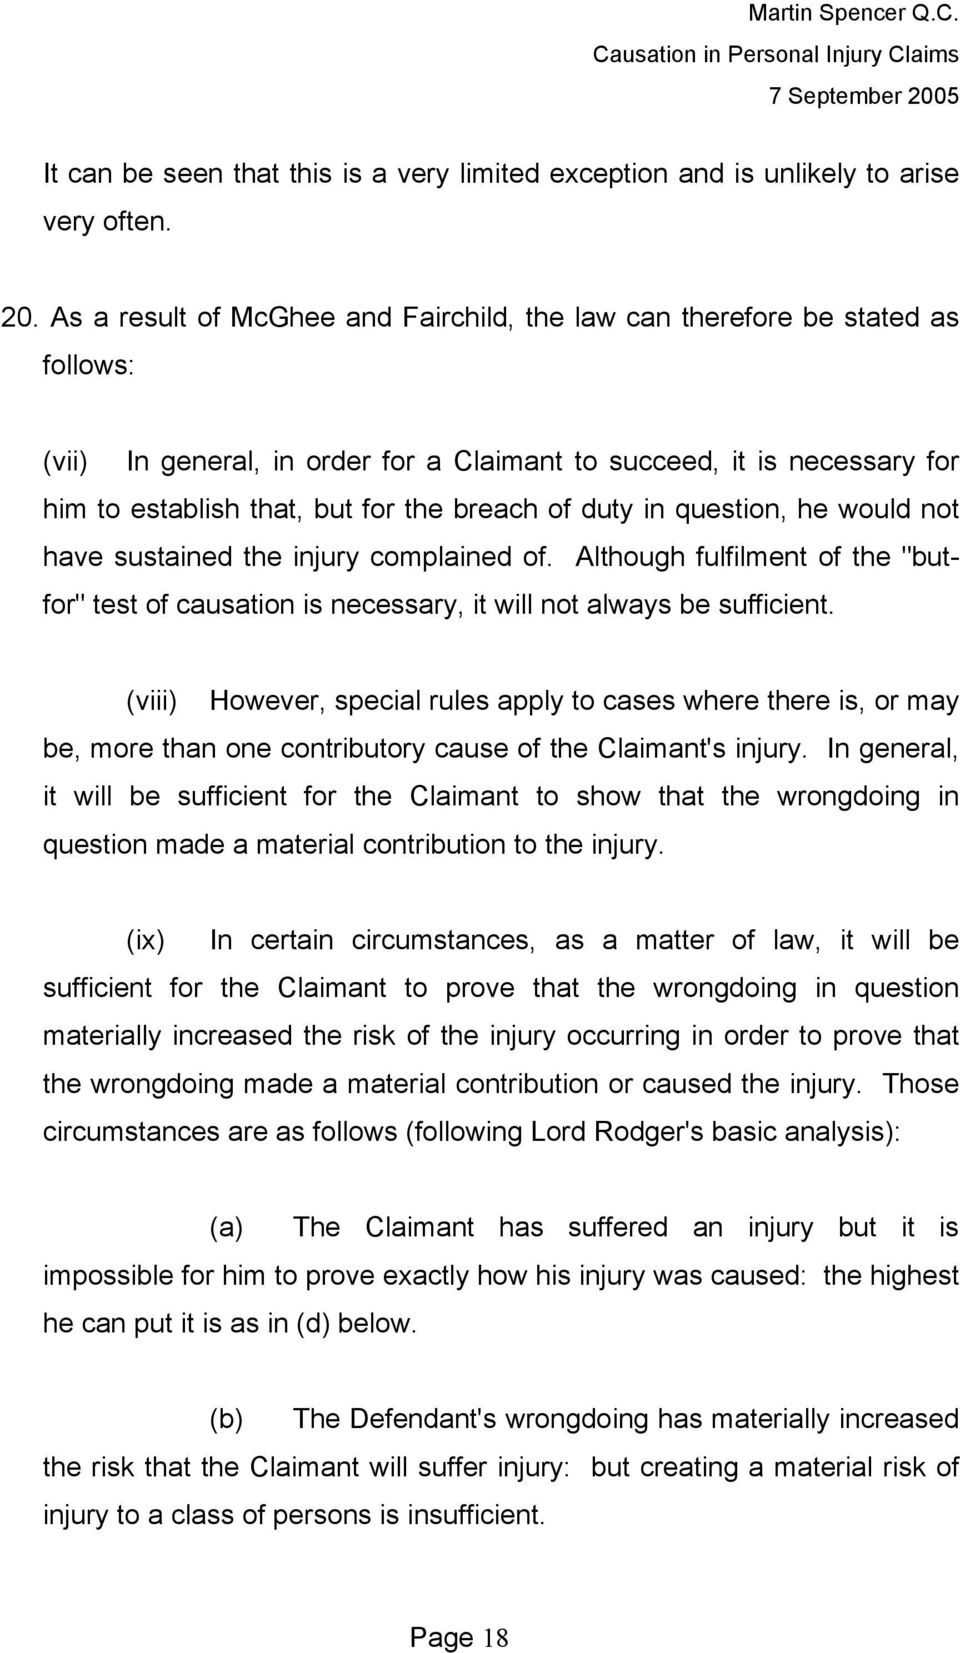 "duty in question, he would not have sustained the injury complained of. Although fulfilment of the ""butfor"" test of causation is necessary, it will not always be sufficient."